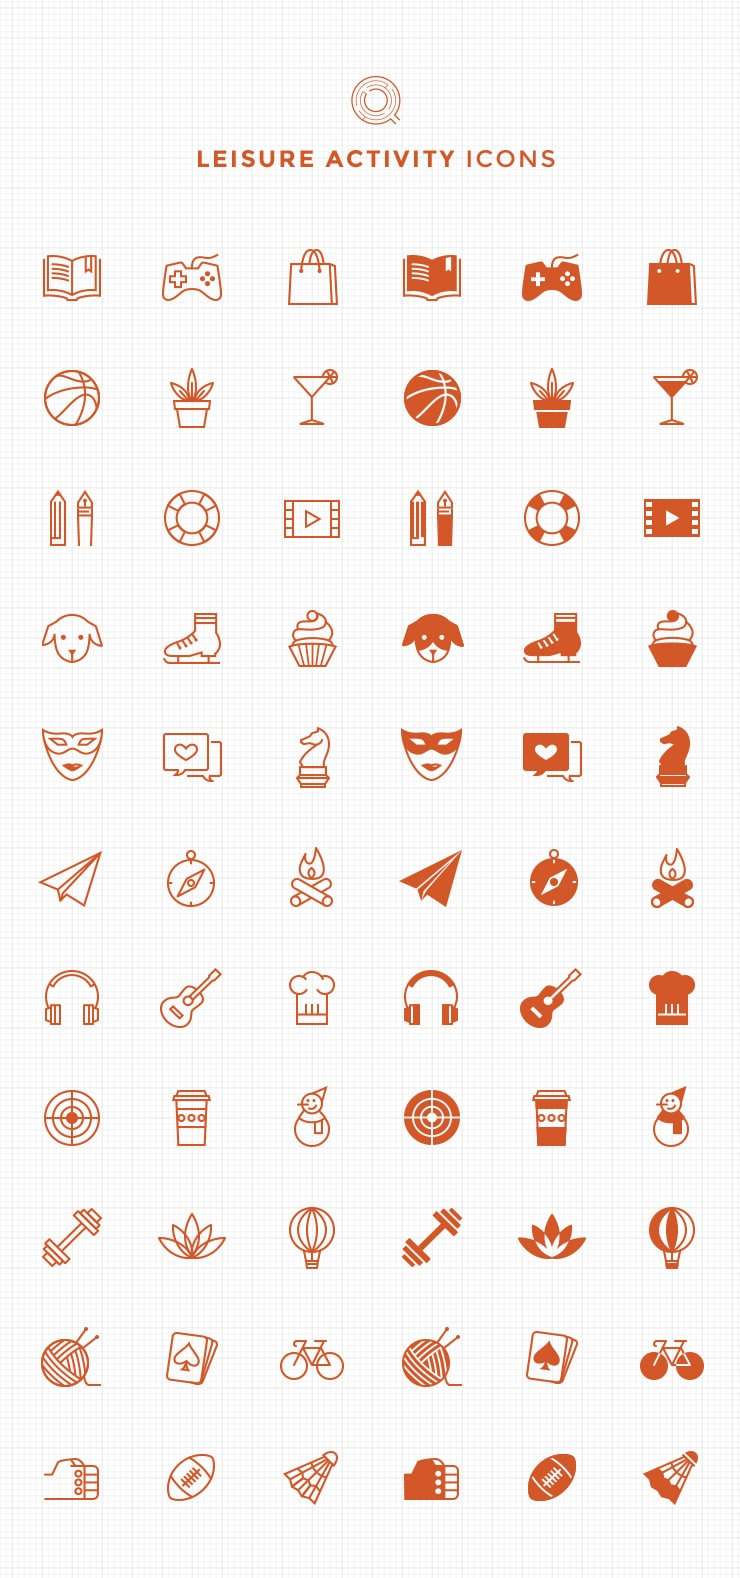 Free Line and Filled Leisure Activity Icons